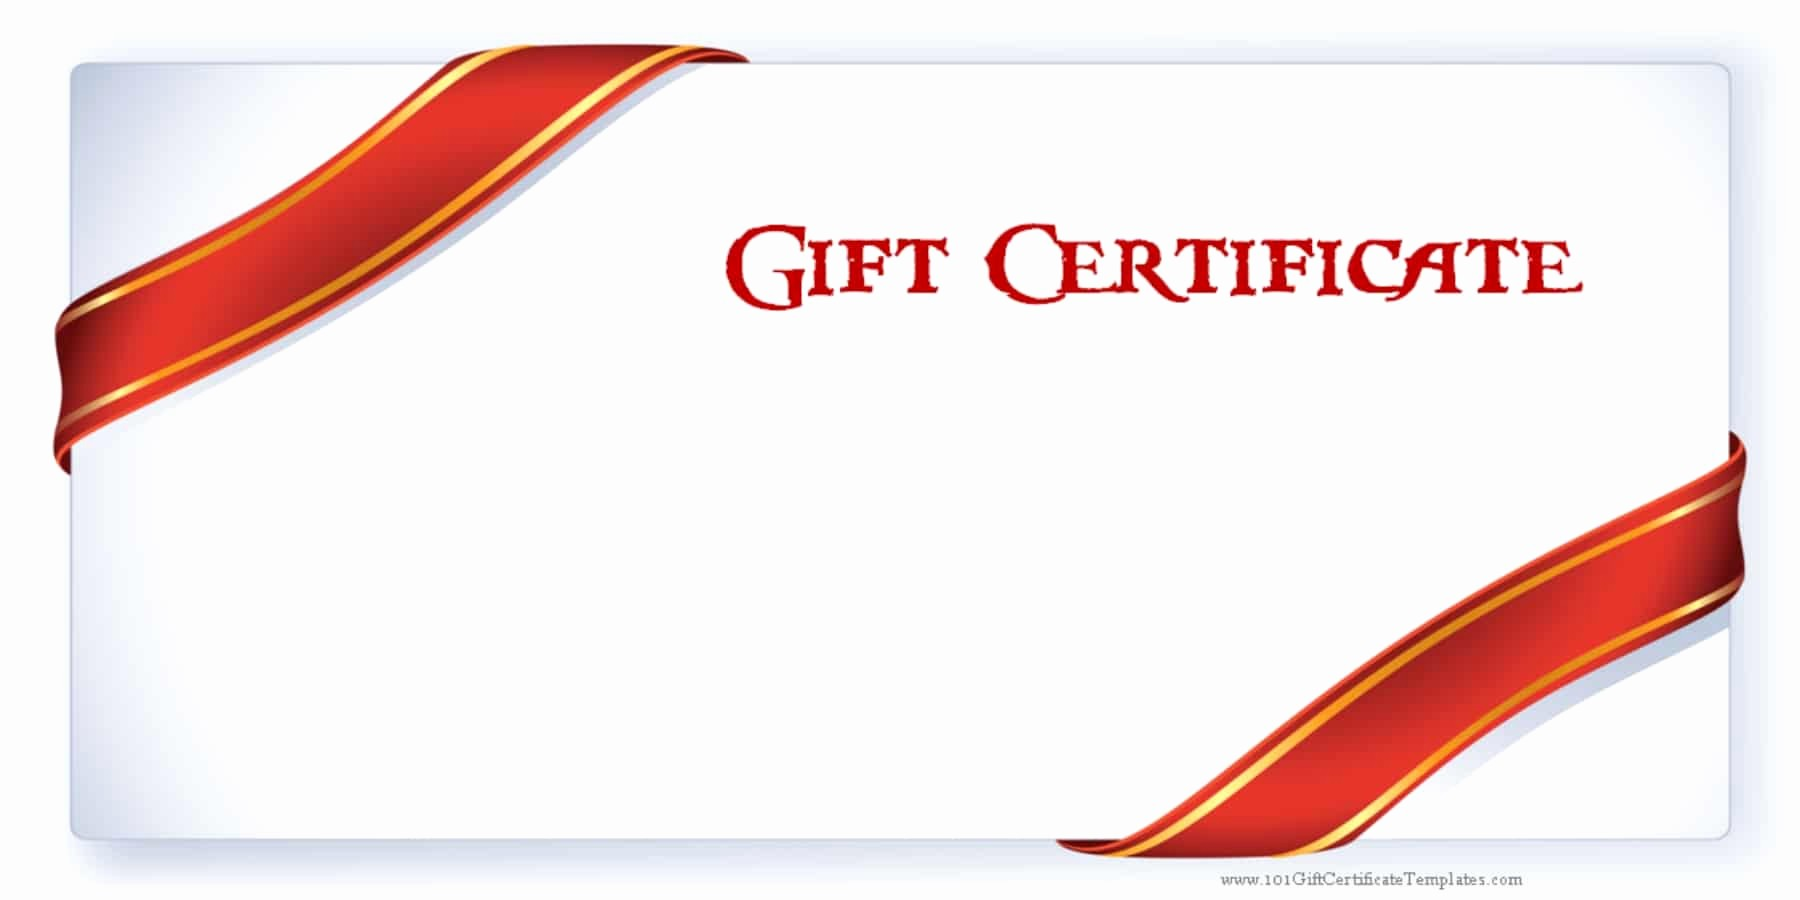 Make Up Gift Certificate Template New Templates Clipart T Certificate Pencil and In Color